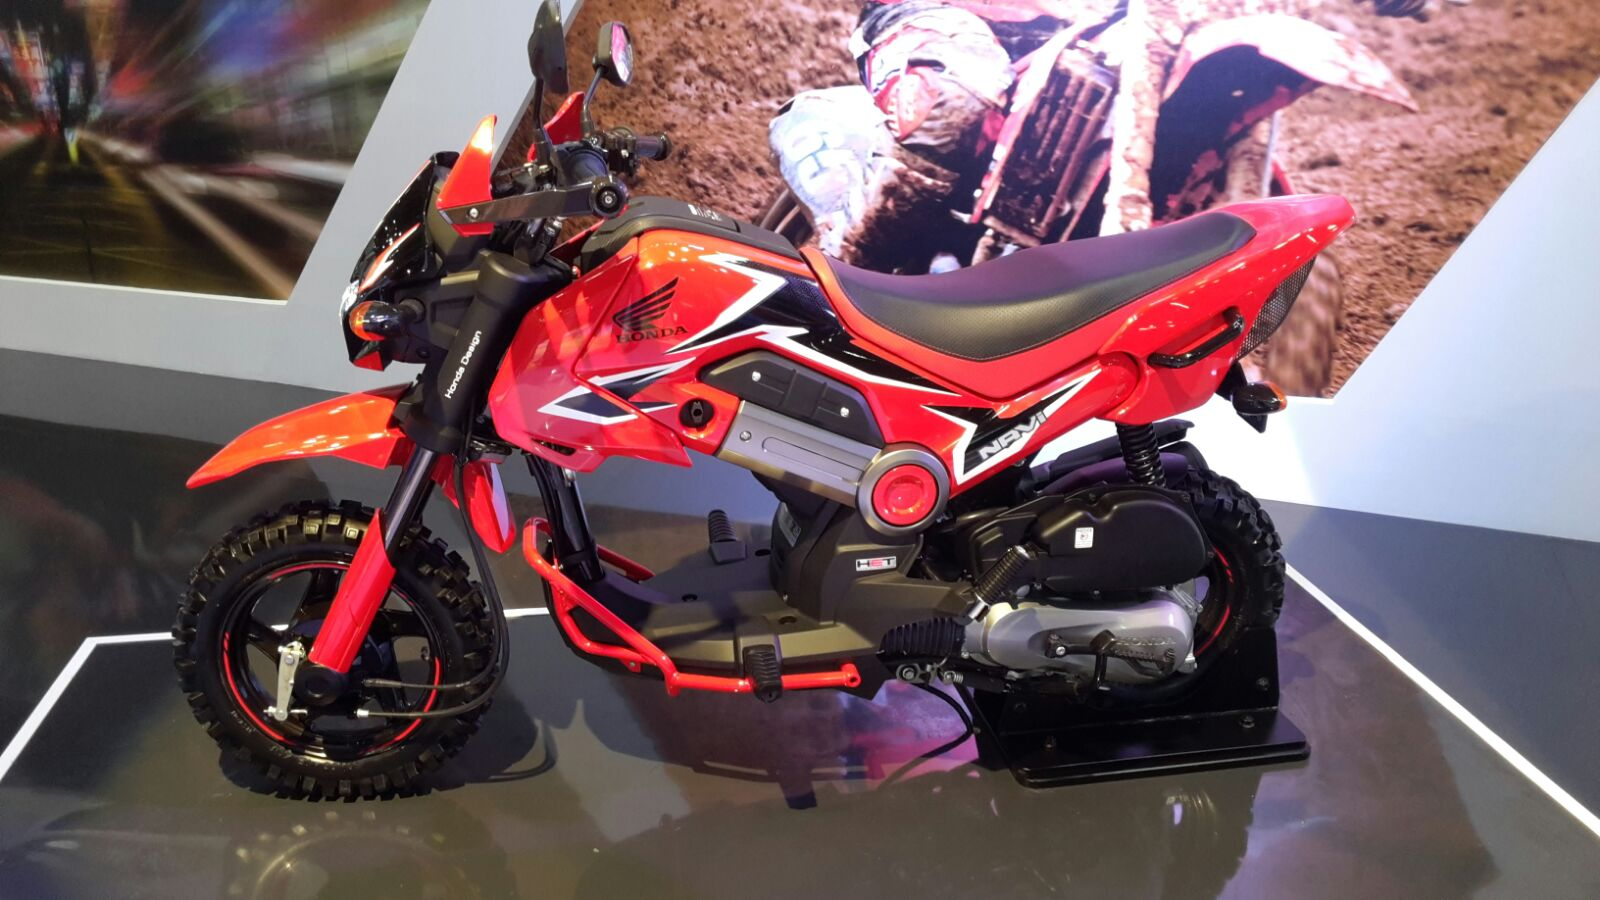 Price Of Yamaha Motorcycle In India